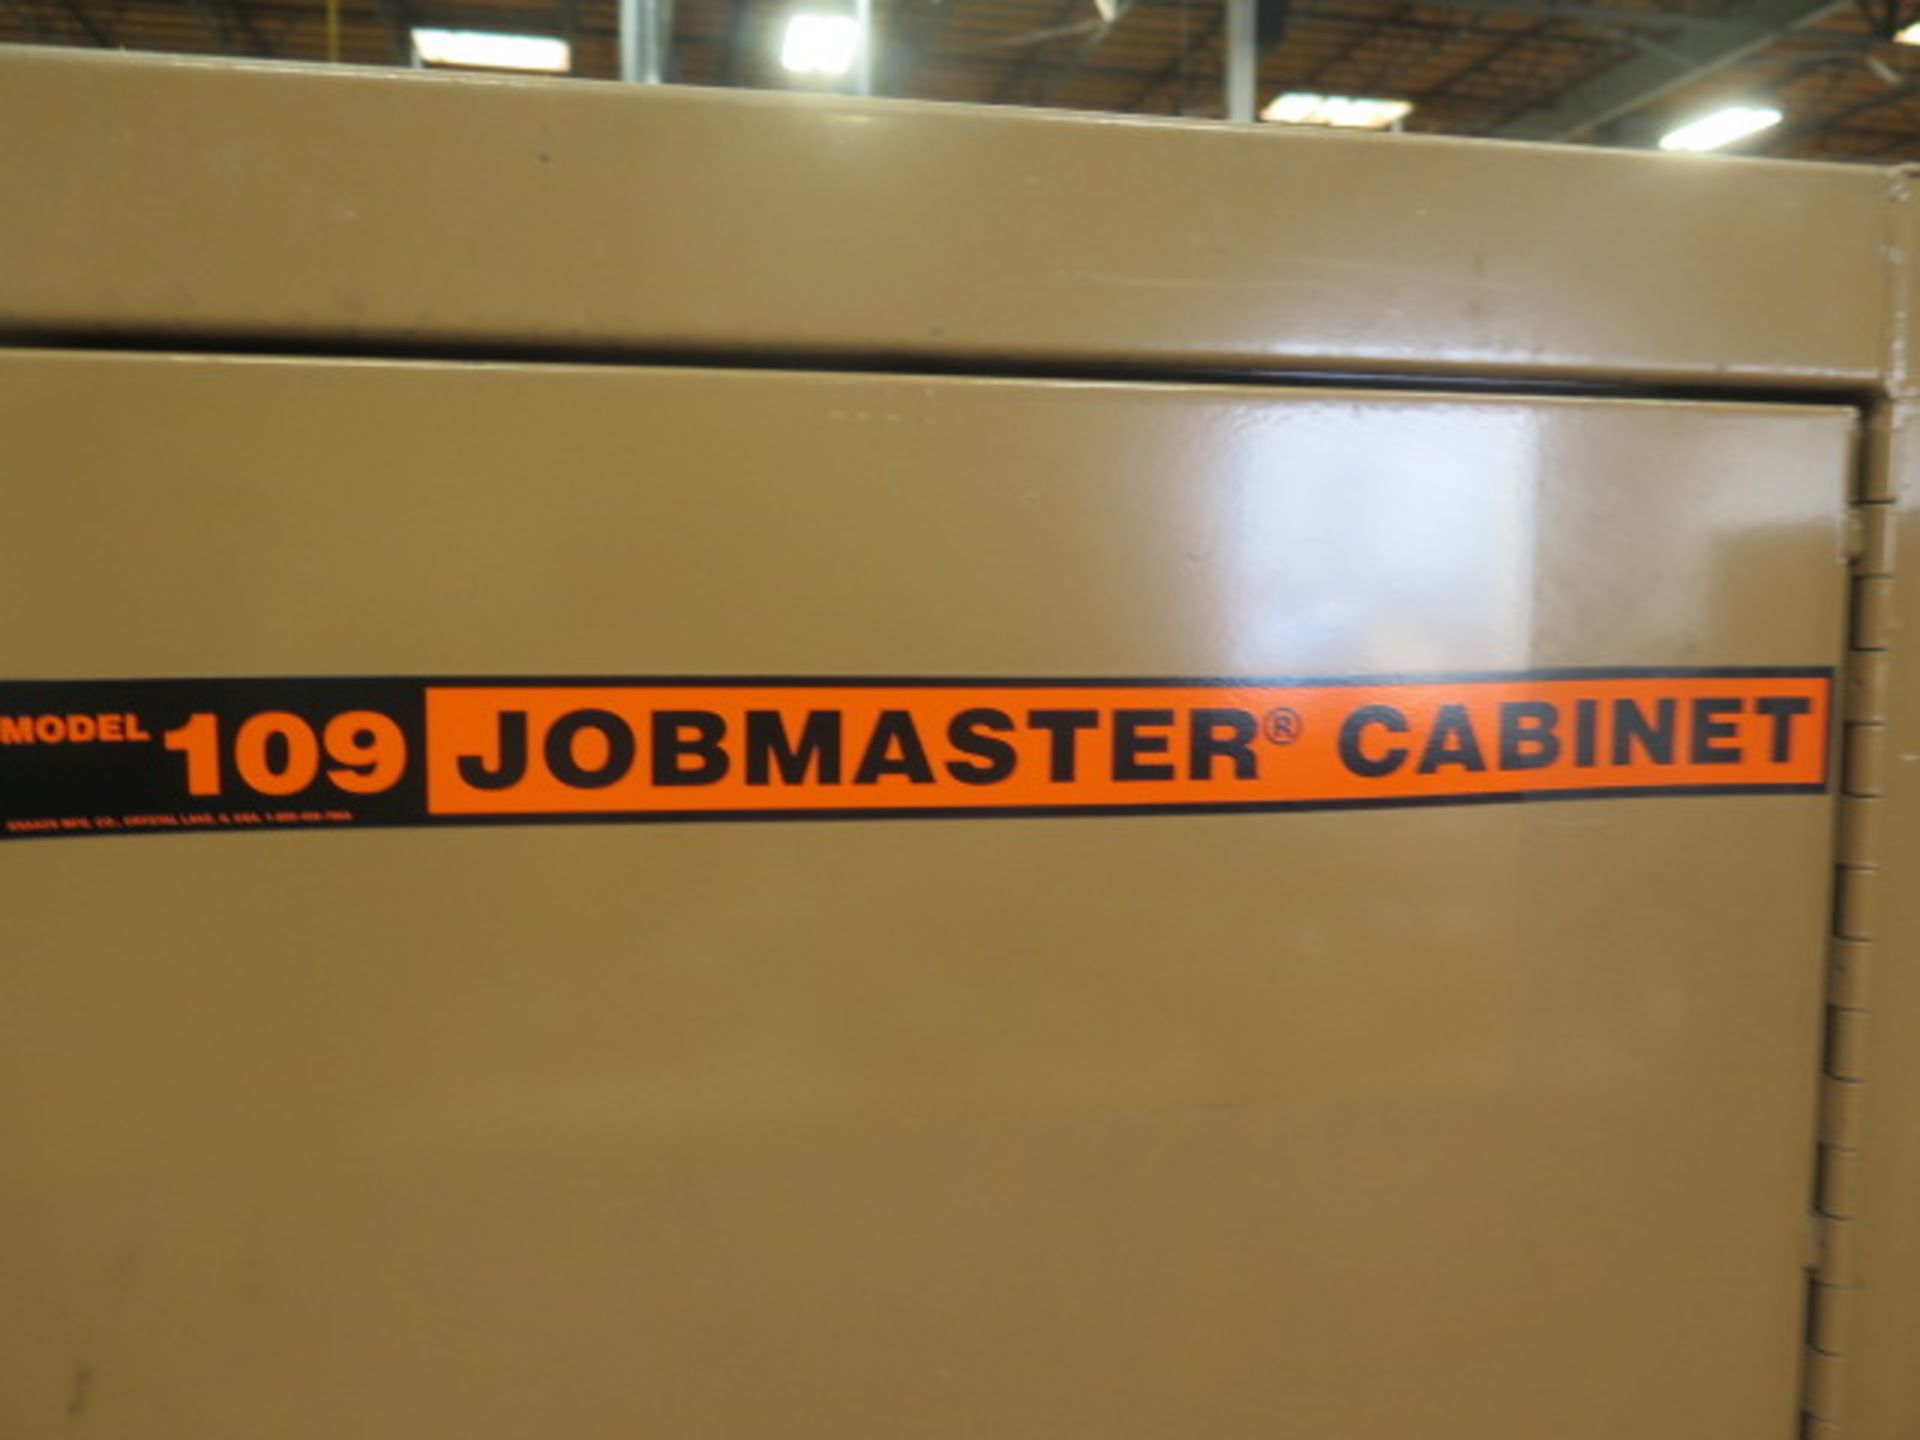 Welding Wire, Welding Guns and Misc Supplies w/ Knaack mdl. 109 Jobmaster Rolling Job Box (SOLD AS- - Image 15 of 16